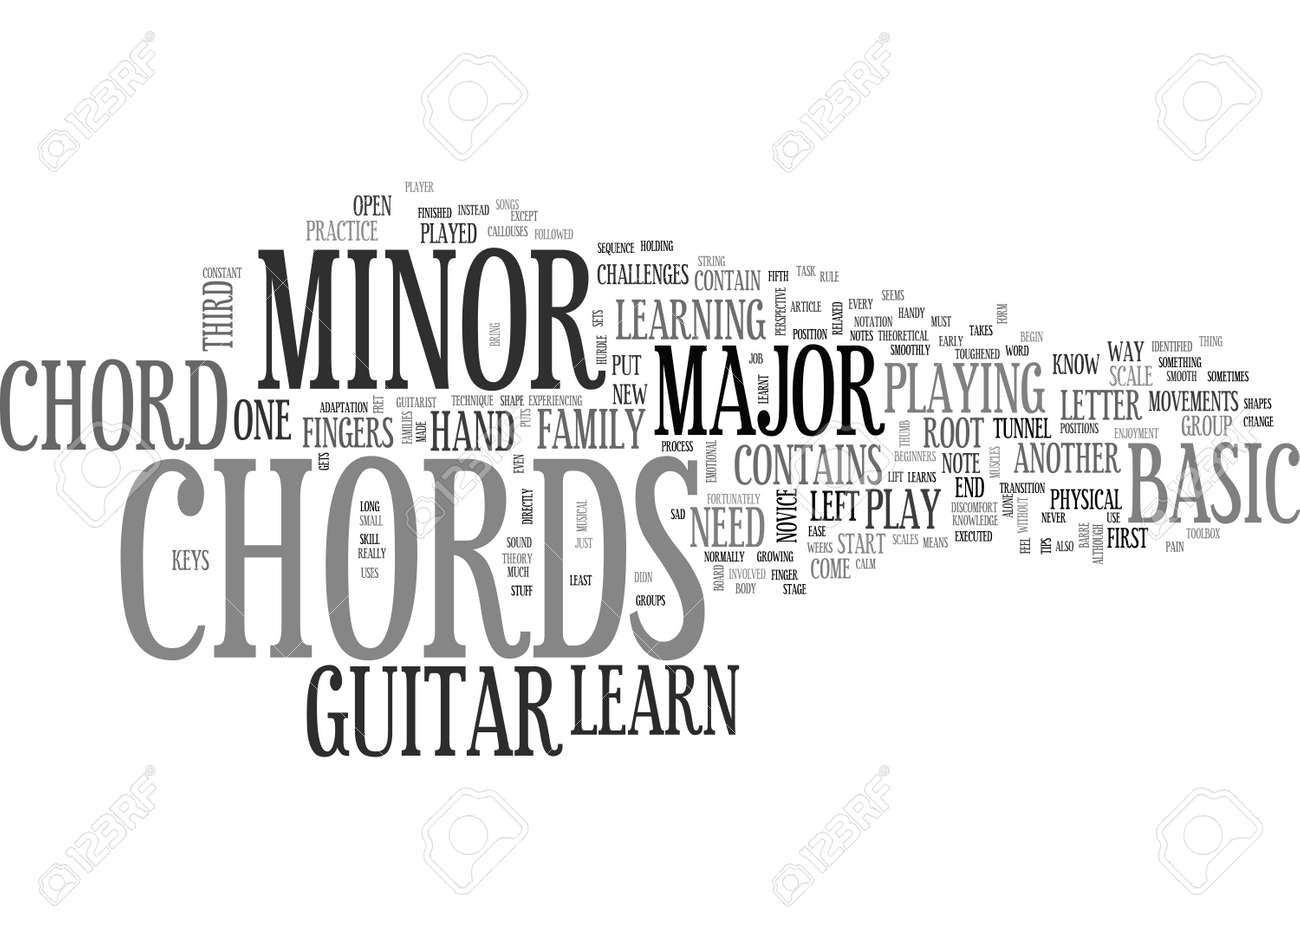 Basic Guitar Chords And How To Play Them Text Word Cloud Concept